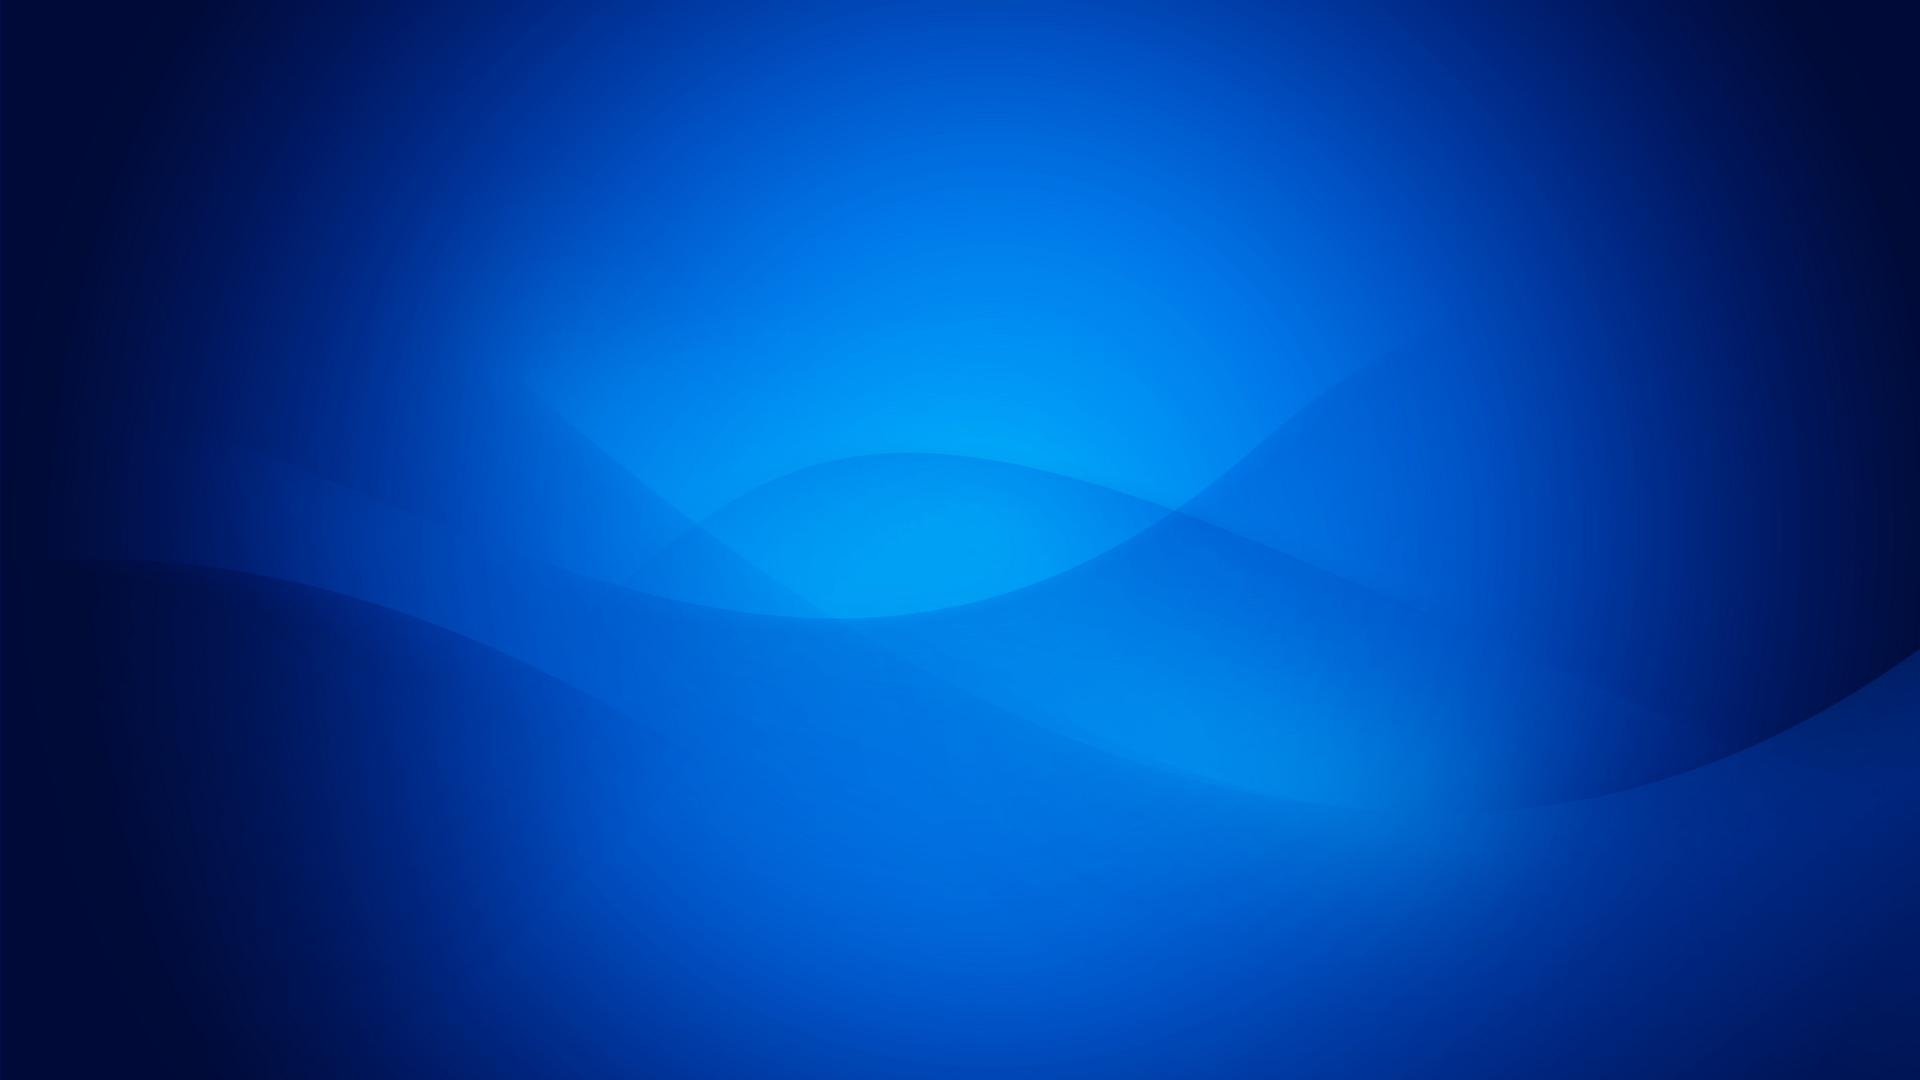 Wallpapers For Cool Blue Desktop Wallpaper